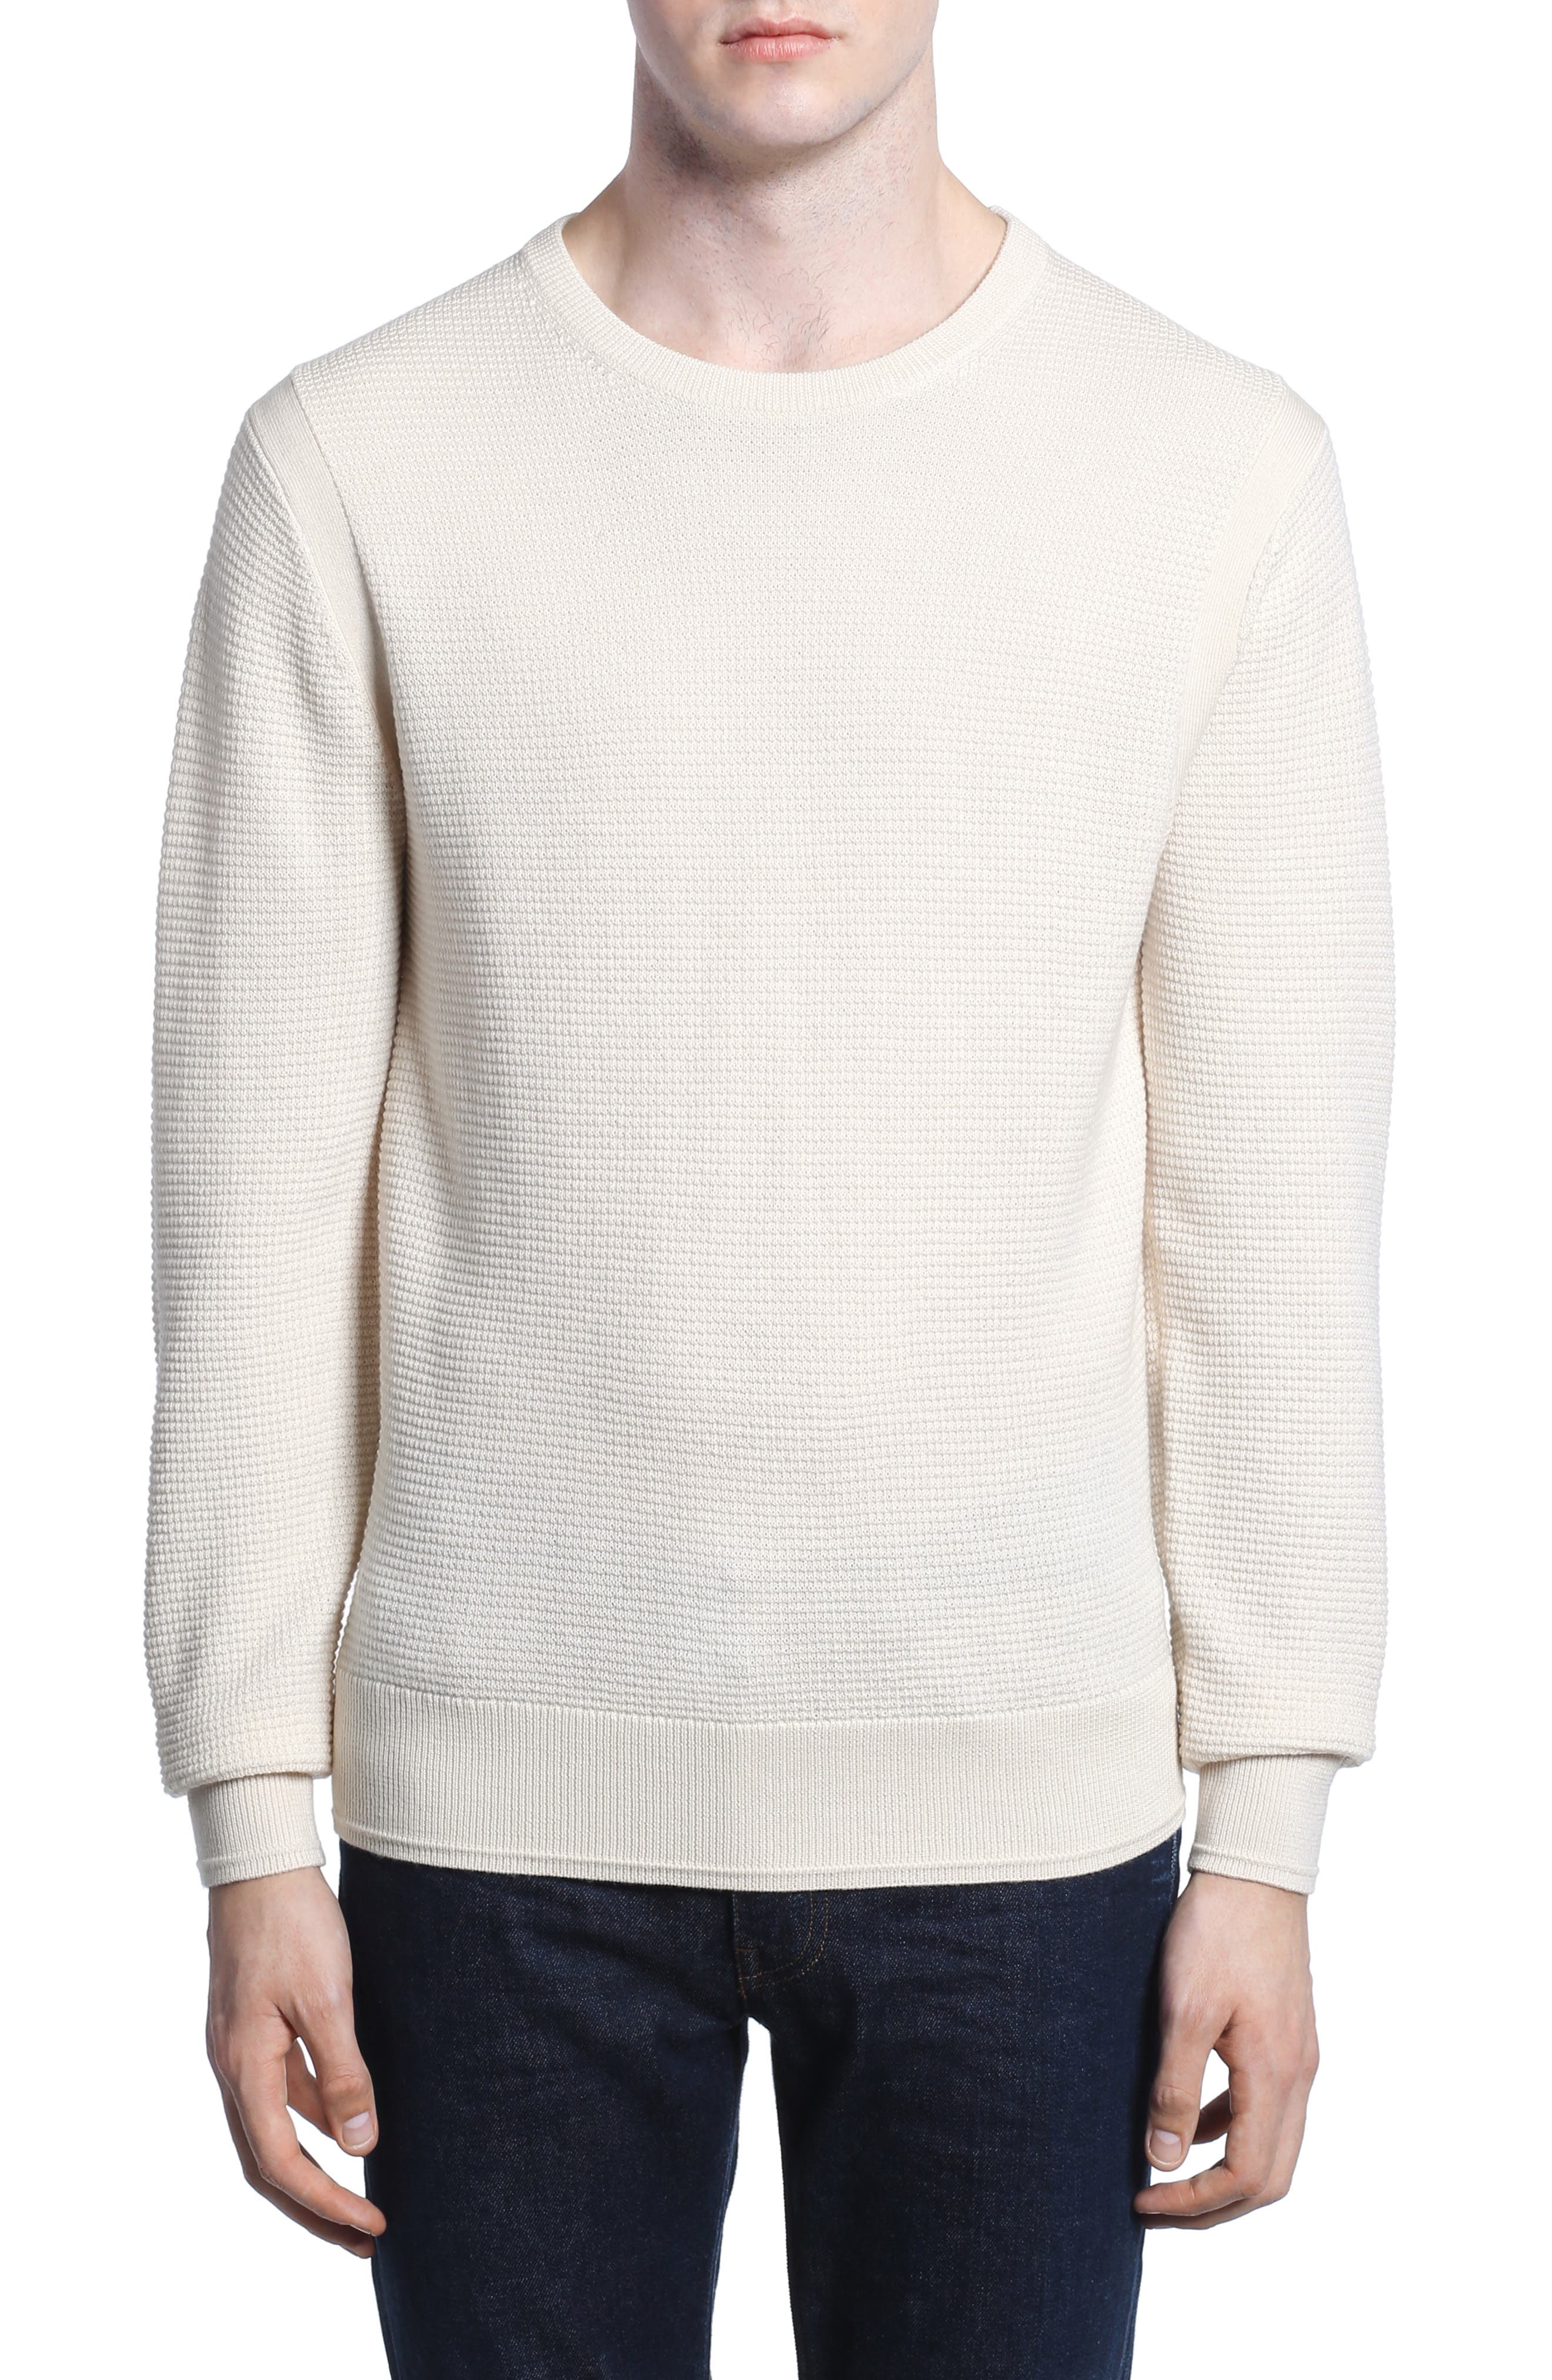 Main Image - Todd Snyder Merino Waffle Knit Wool Sweater